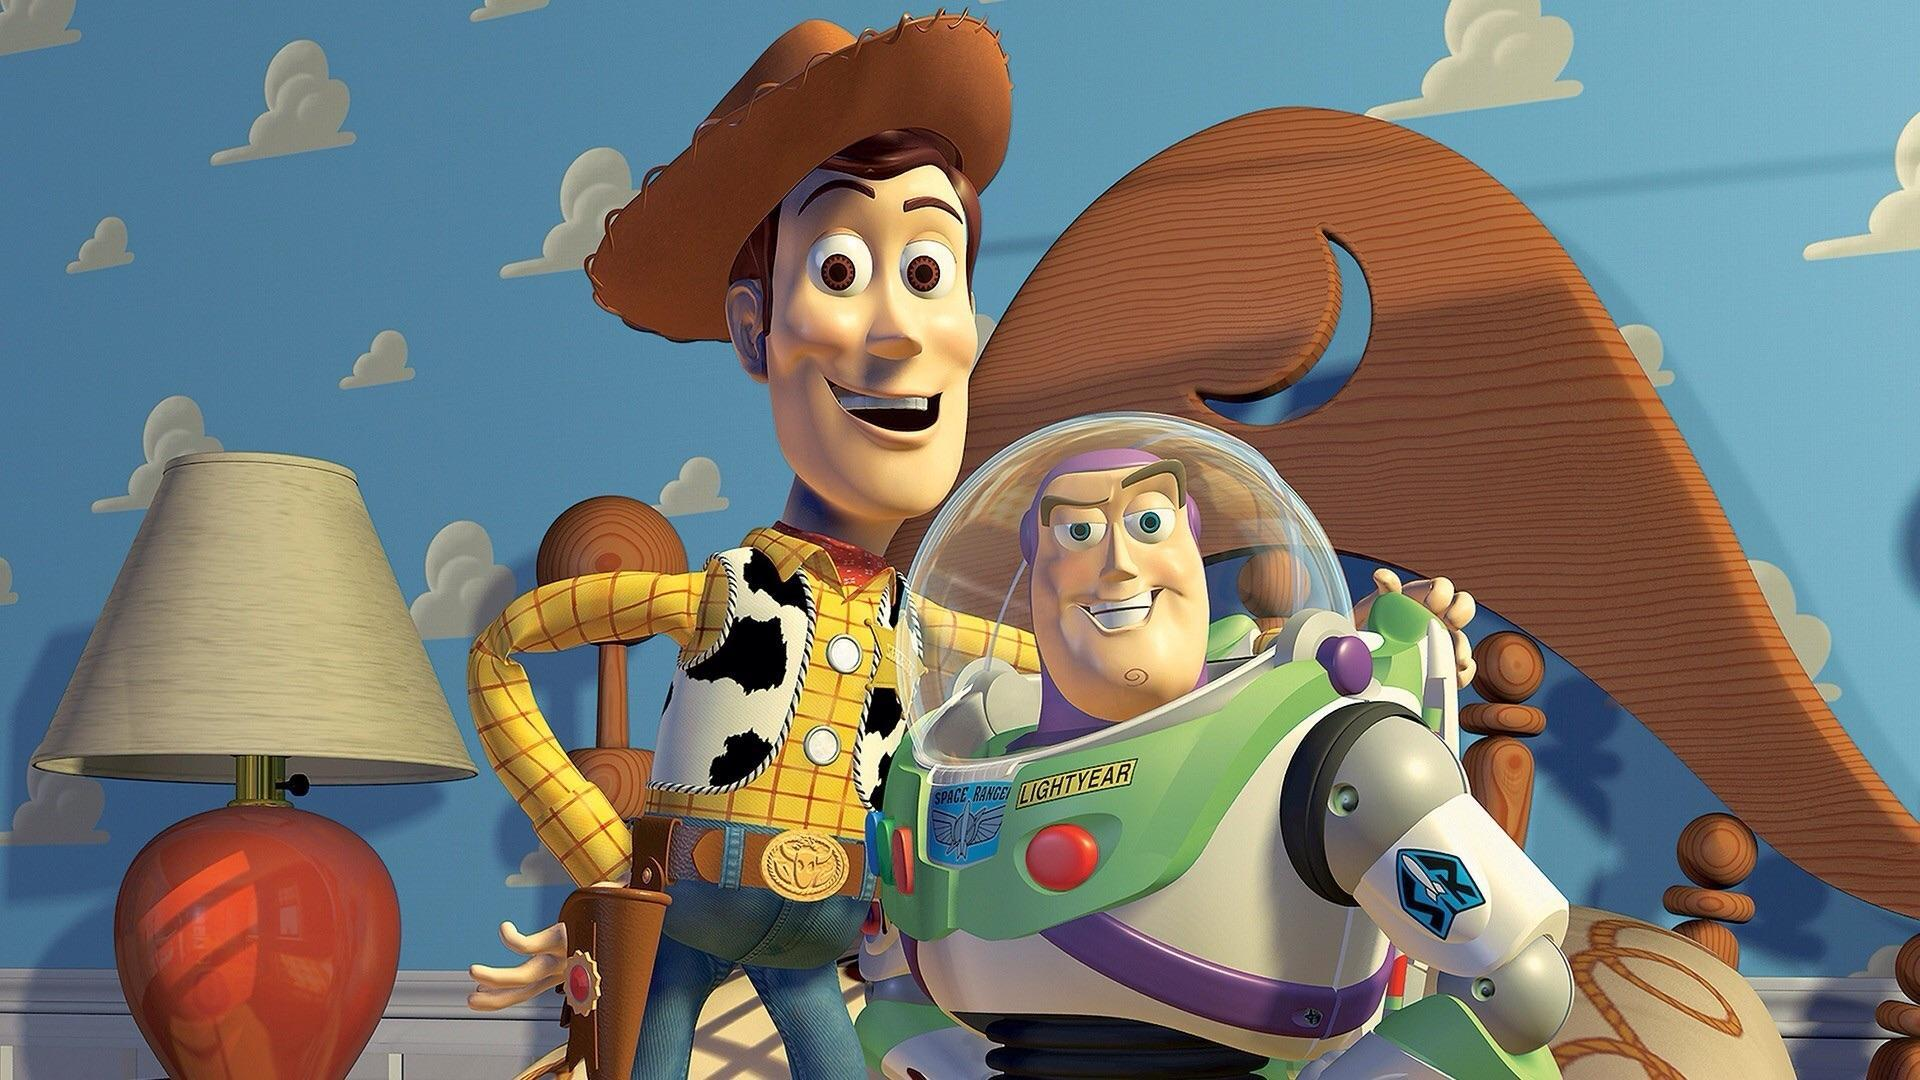 Did you enjoy the movie Toy Story?